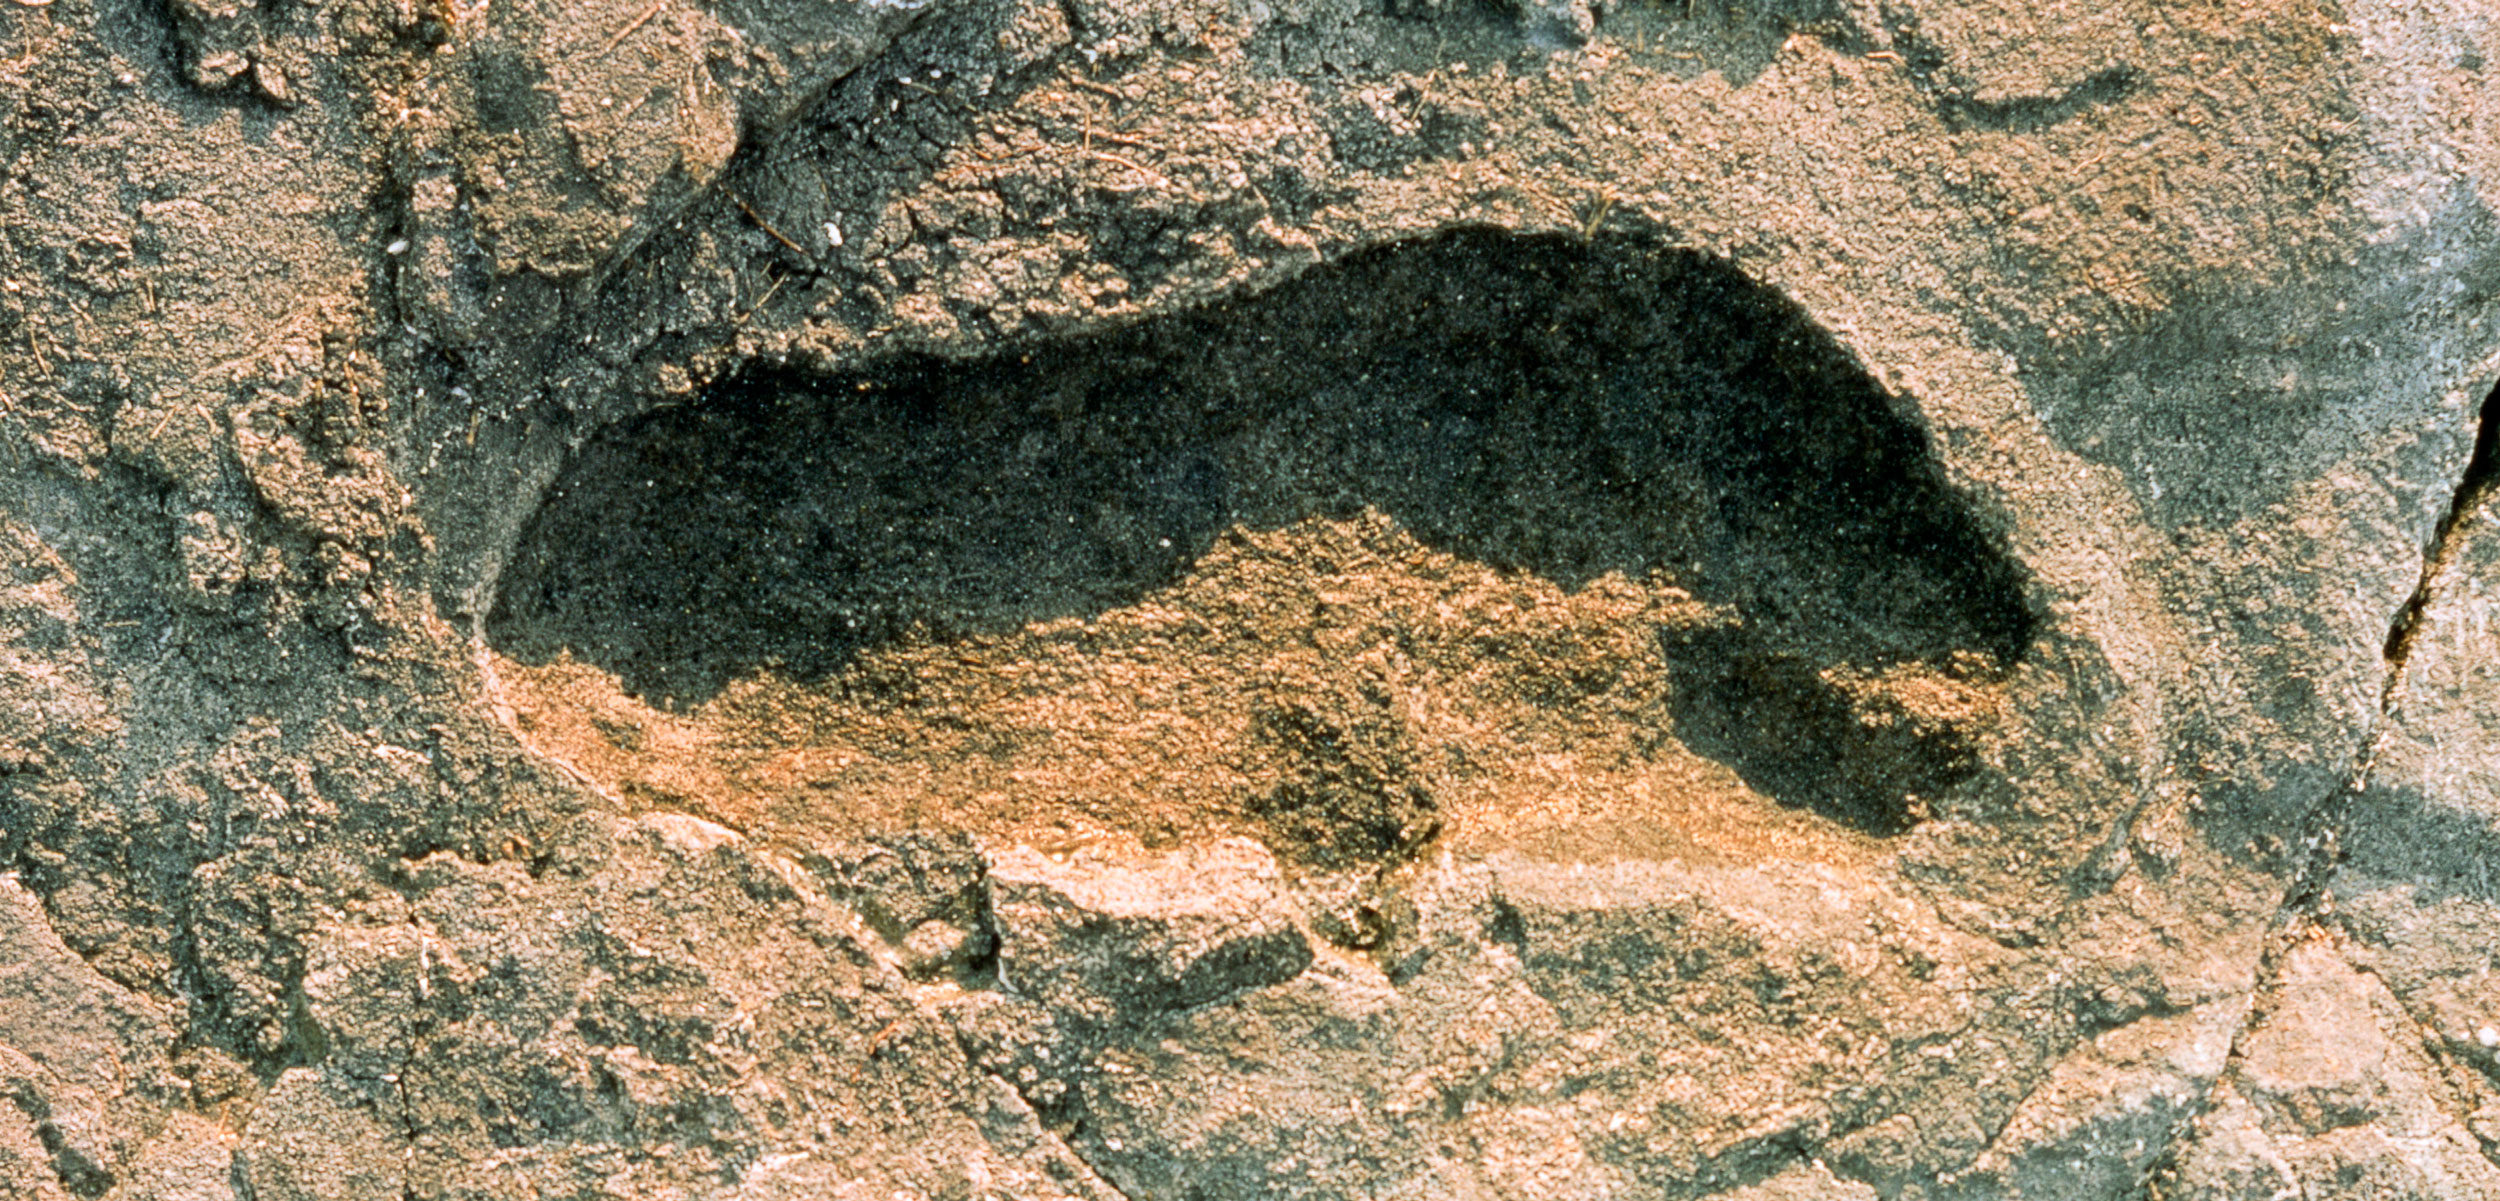 Single hominid footprint from Laetoli, Tanzania